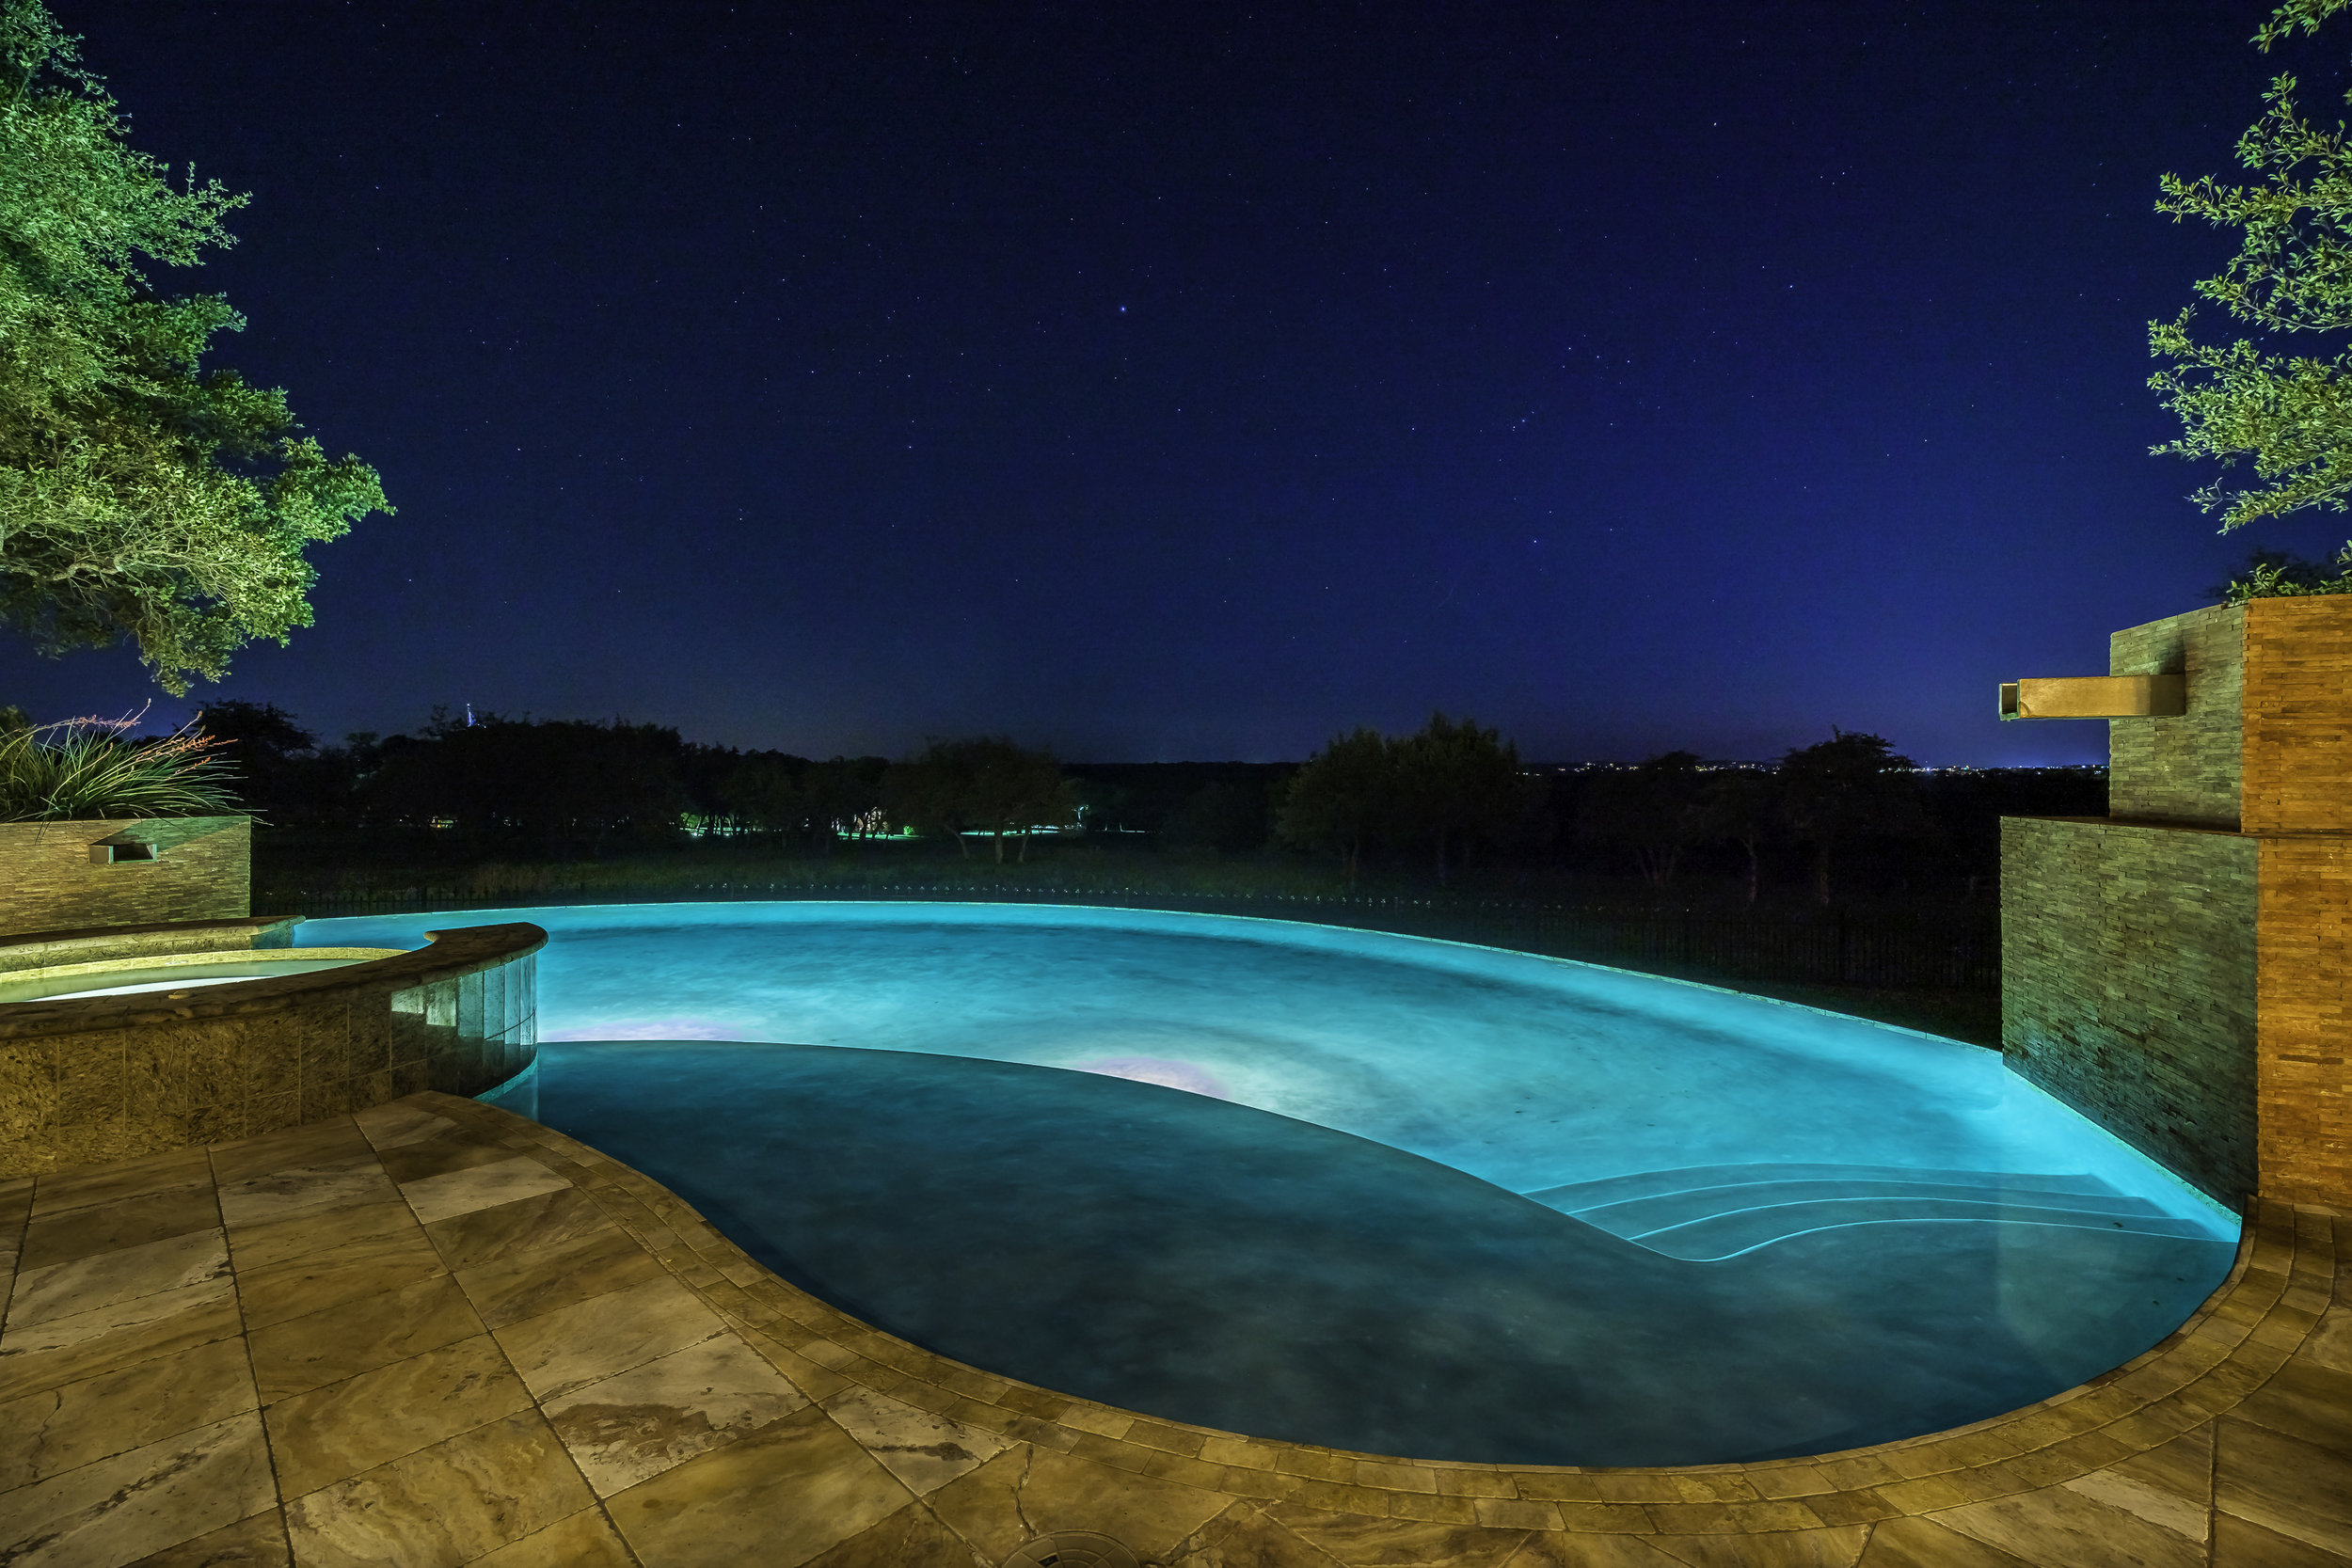 2502 Dominion Hill Pool TL - Valerie DiFabio - April 2019-29.jpg